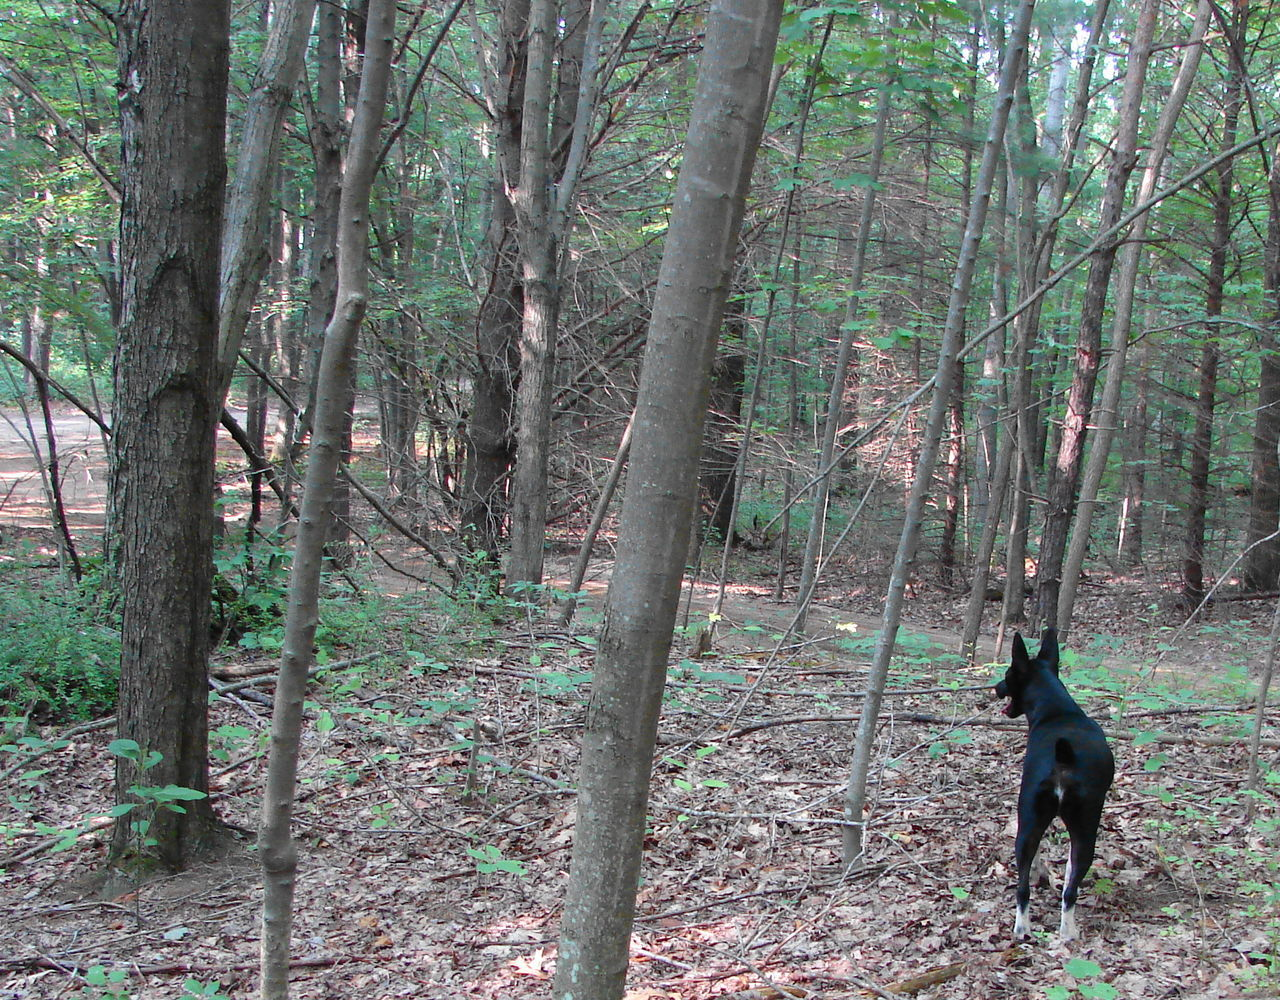 Dog Standing Amidst Trees In Forest